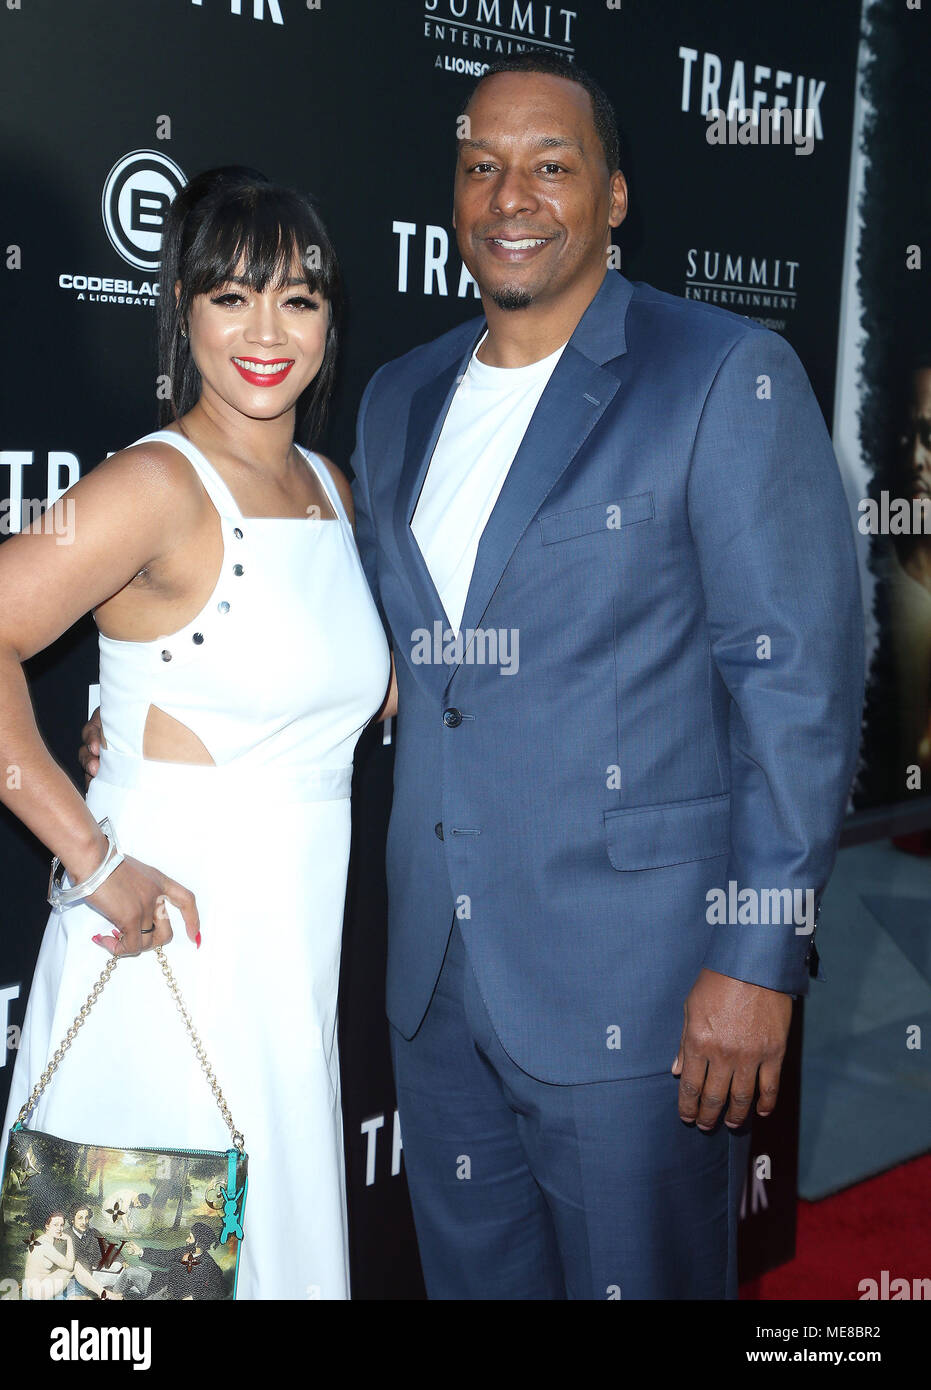 Deon Taylor And Roxanne Avent Stock Photos & Deon Taylor And Roxanne ...